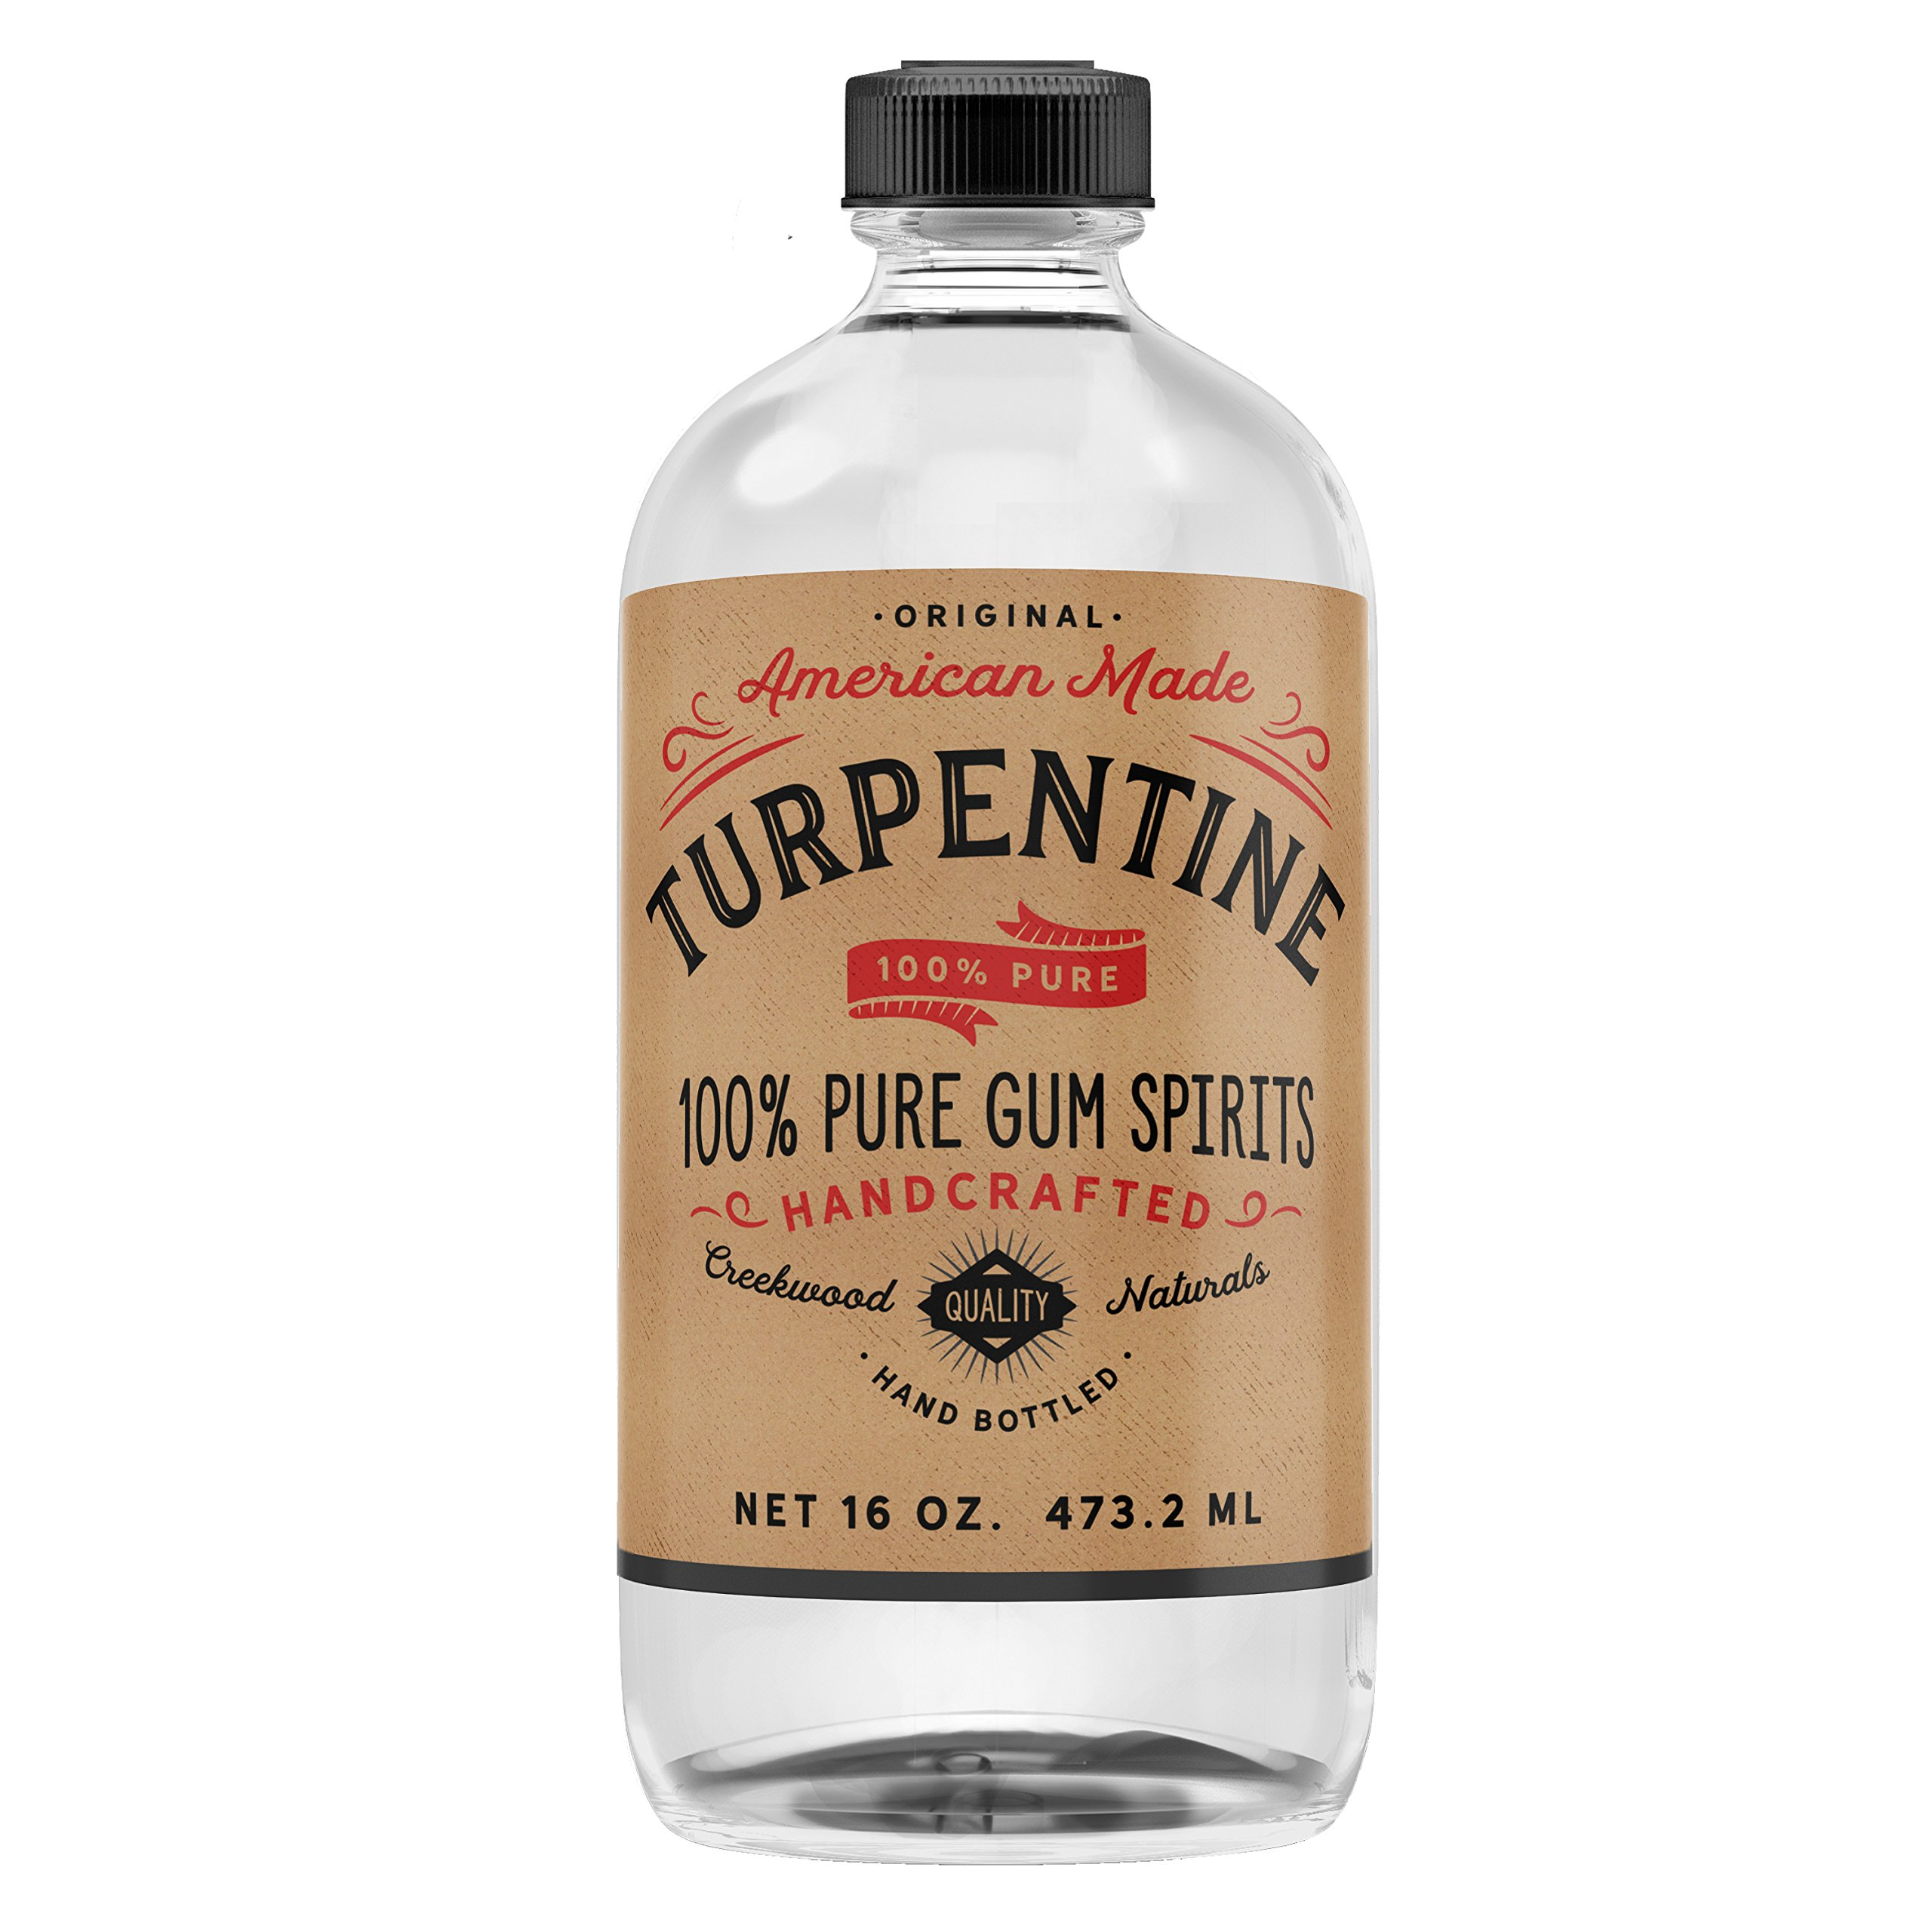 100% Pure Gum Spirits of Turpentine - 16 oz